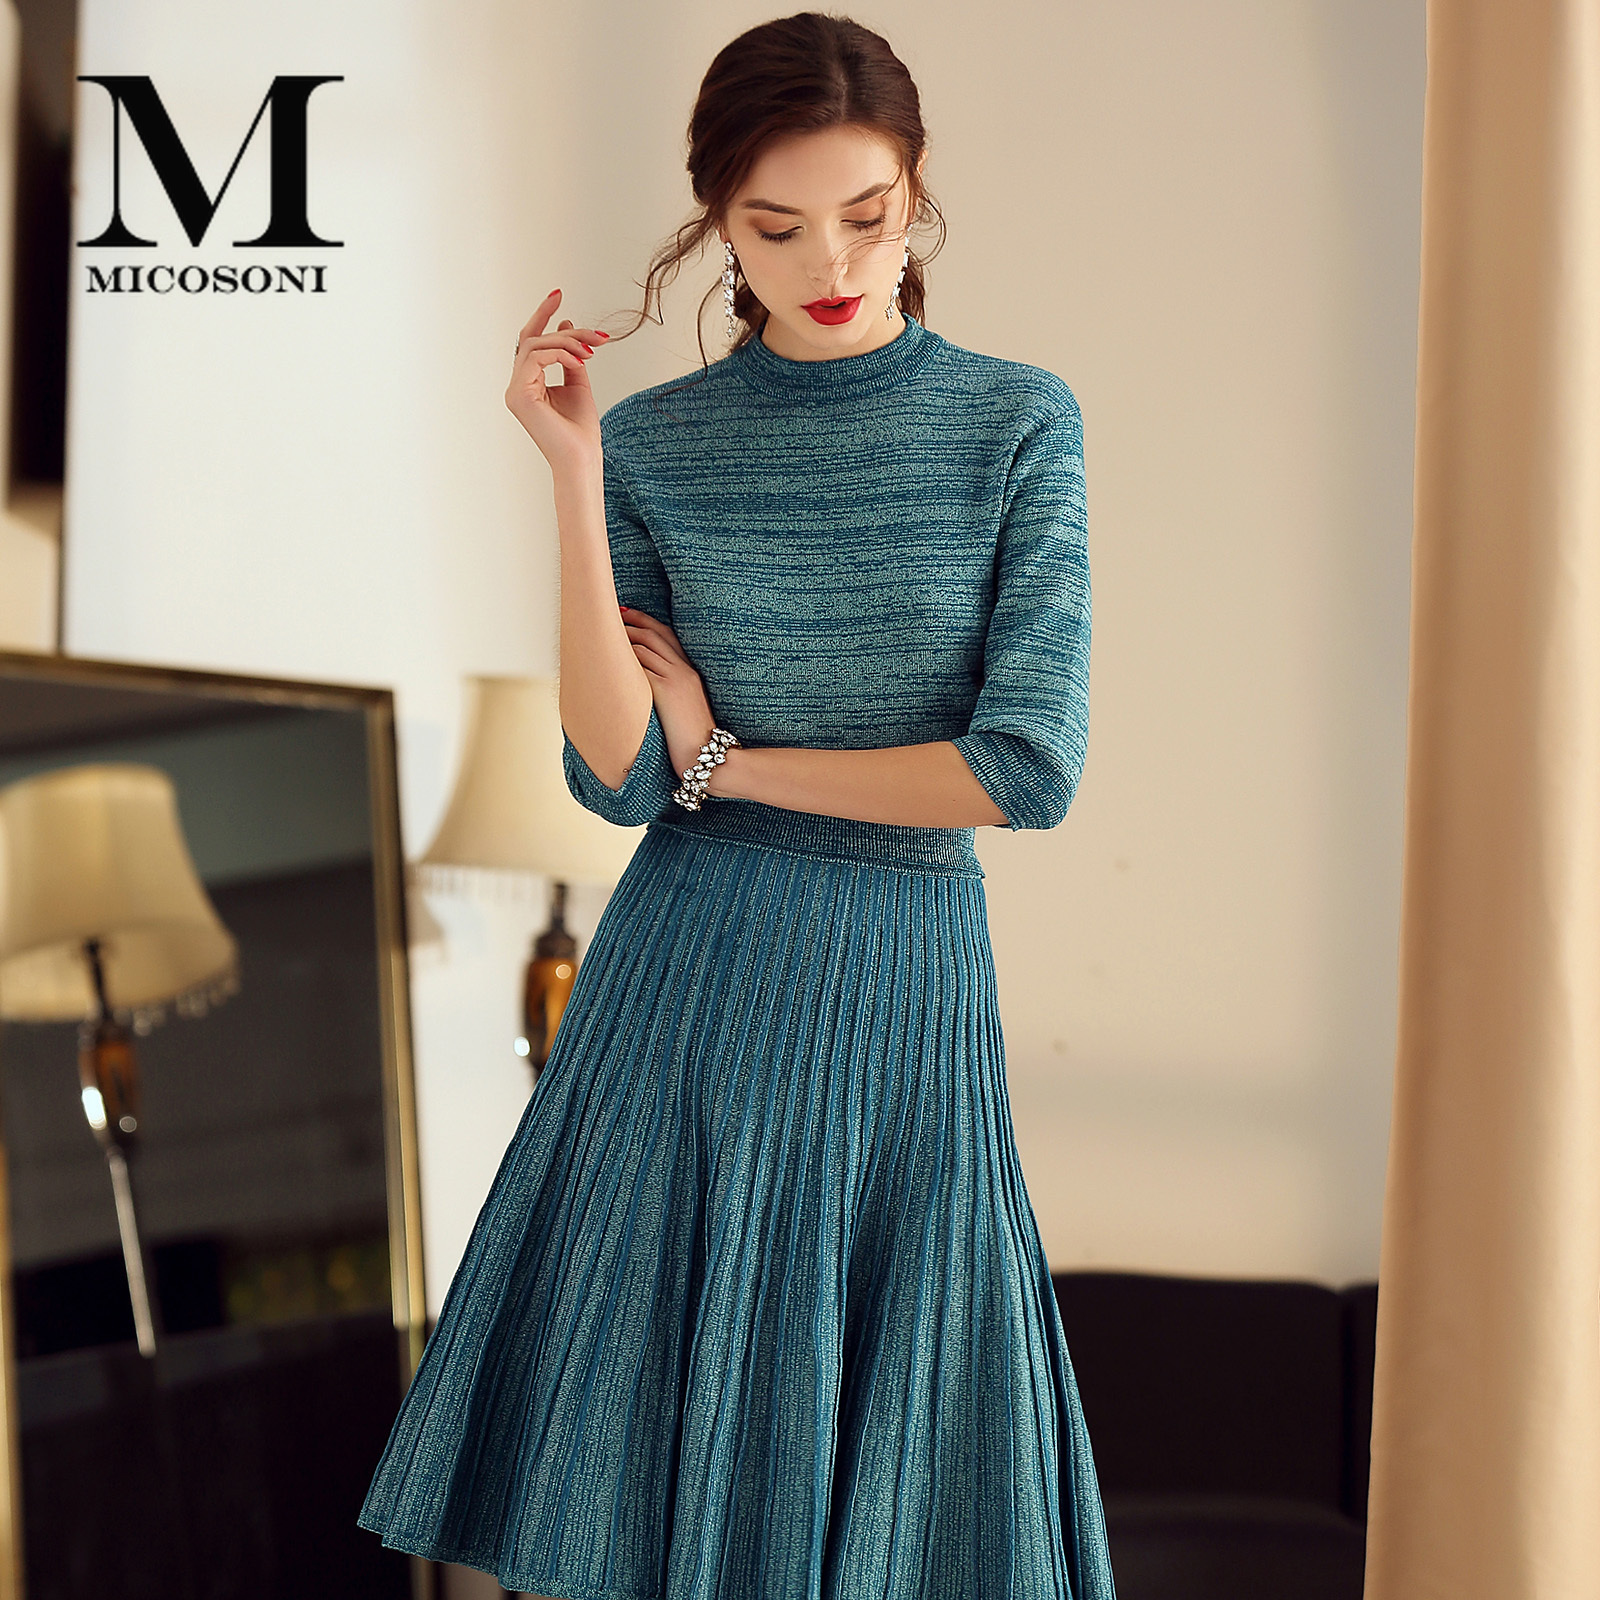 Micosoni Italy Style Spring Women's Suit Half Sleeve Knit Top Pleated Skirt Two-Piece Set Office Lady Elegant Plus Size S-XXXL